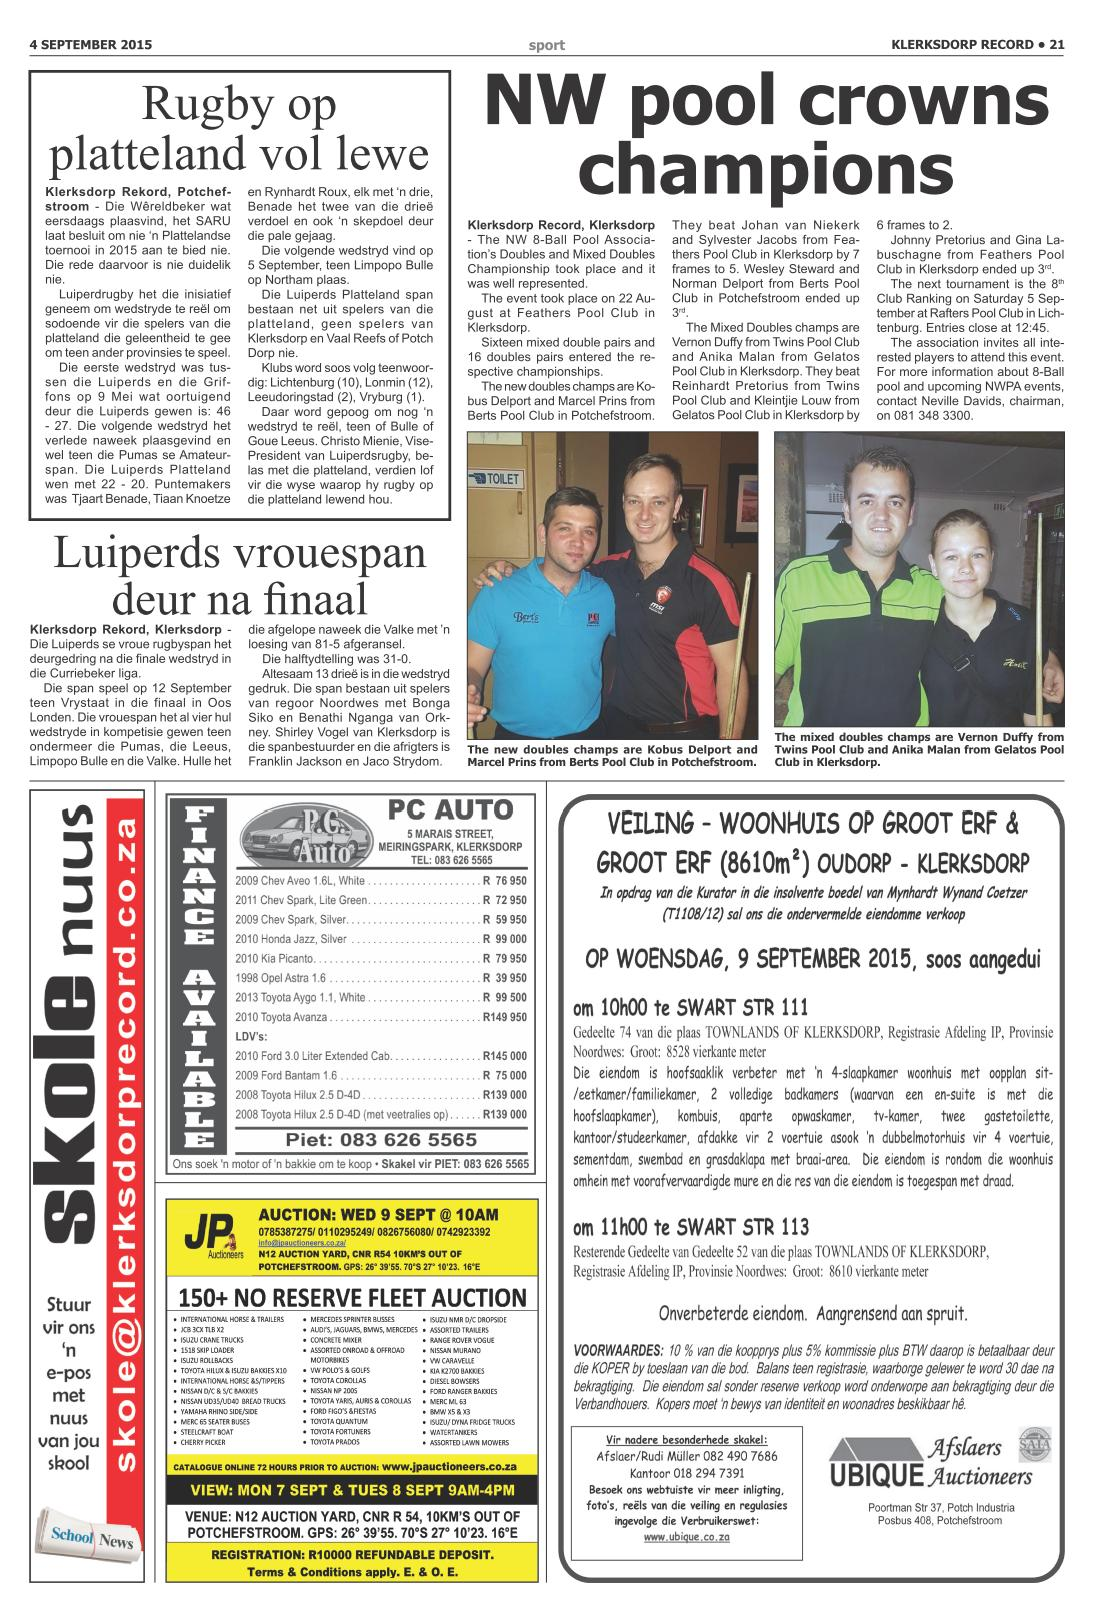 www salocalnewspapers co za - /newspapers/klerksdorprecord